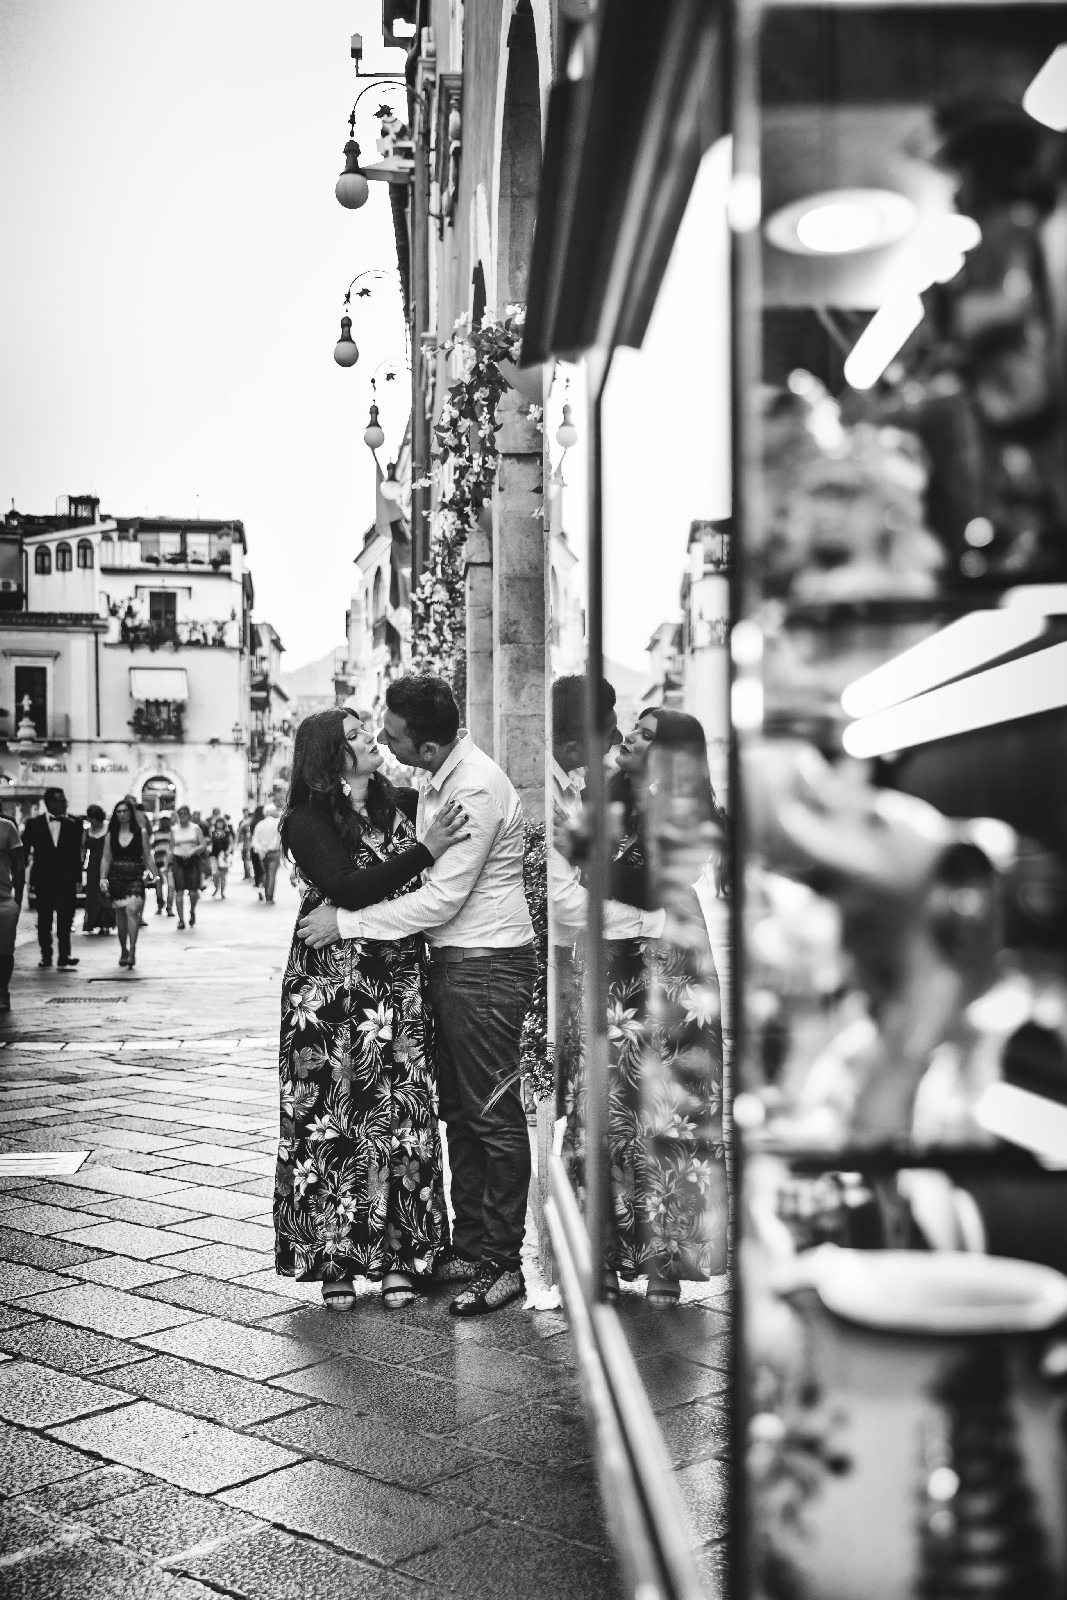 023-2018-09-22-Engagement-Alessandra-e-Igor-Pizzone-5DE-044-Edit